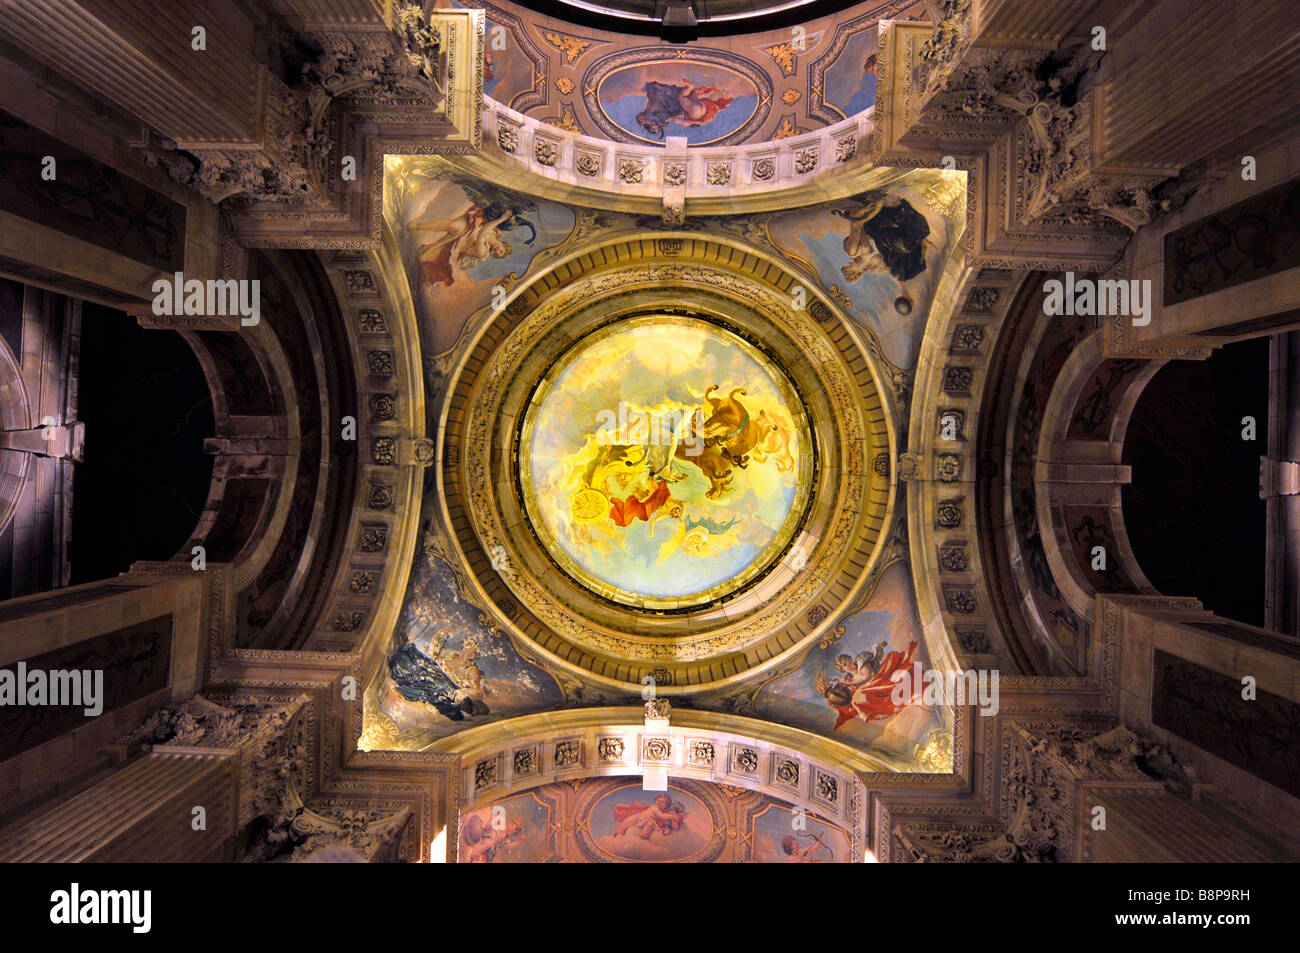 """The ceiling of The Great Hall at """"Castle Howard"""" Yorkshire, Britain, UK - Stock Image"""